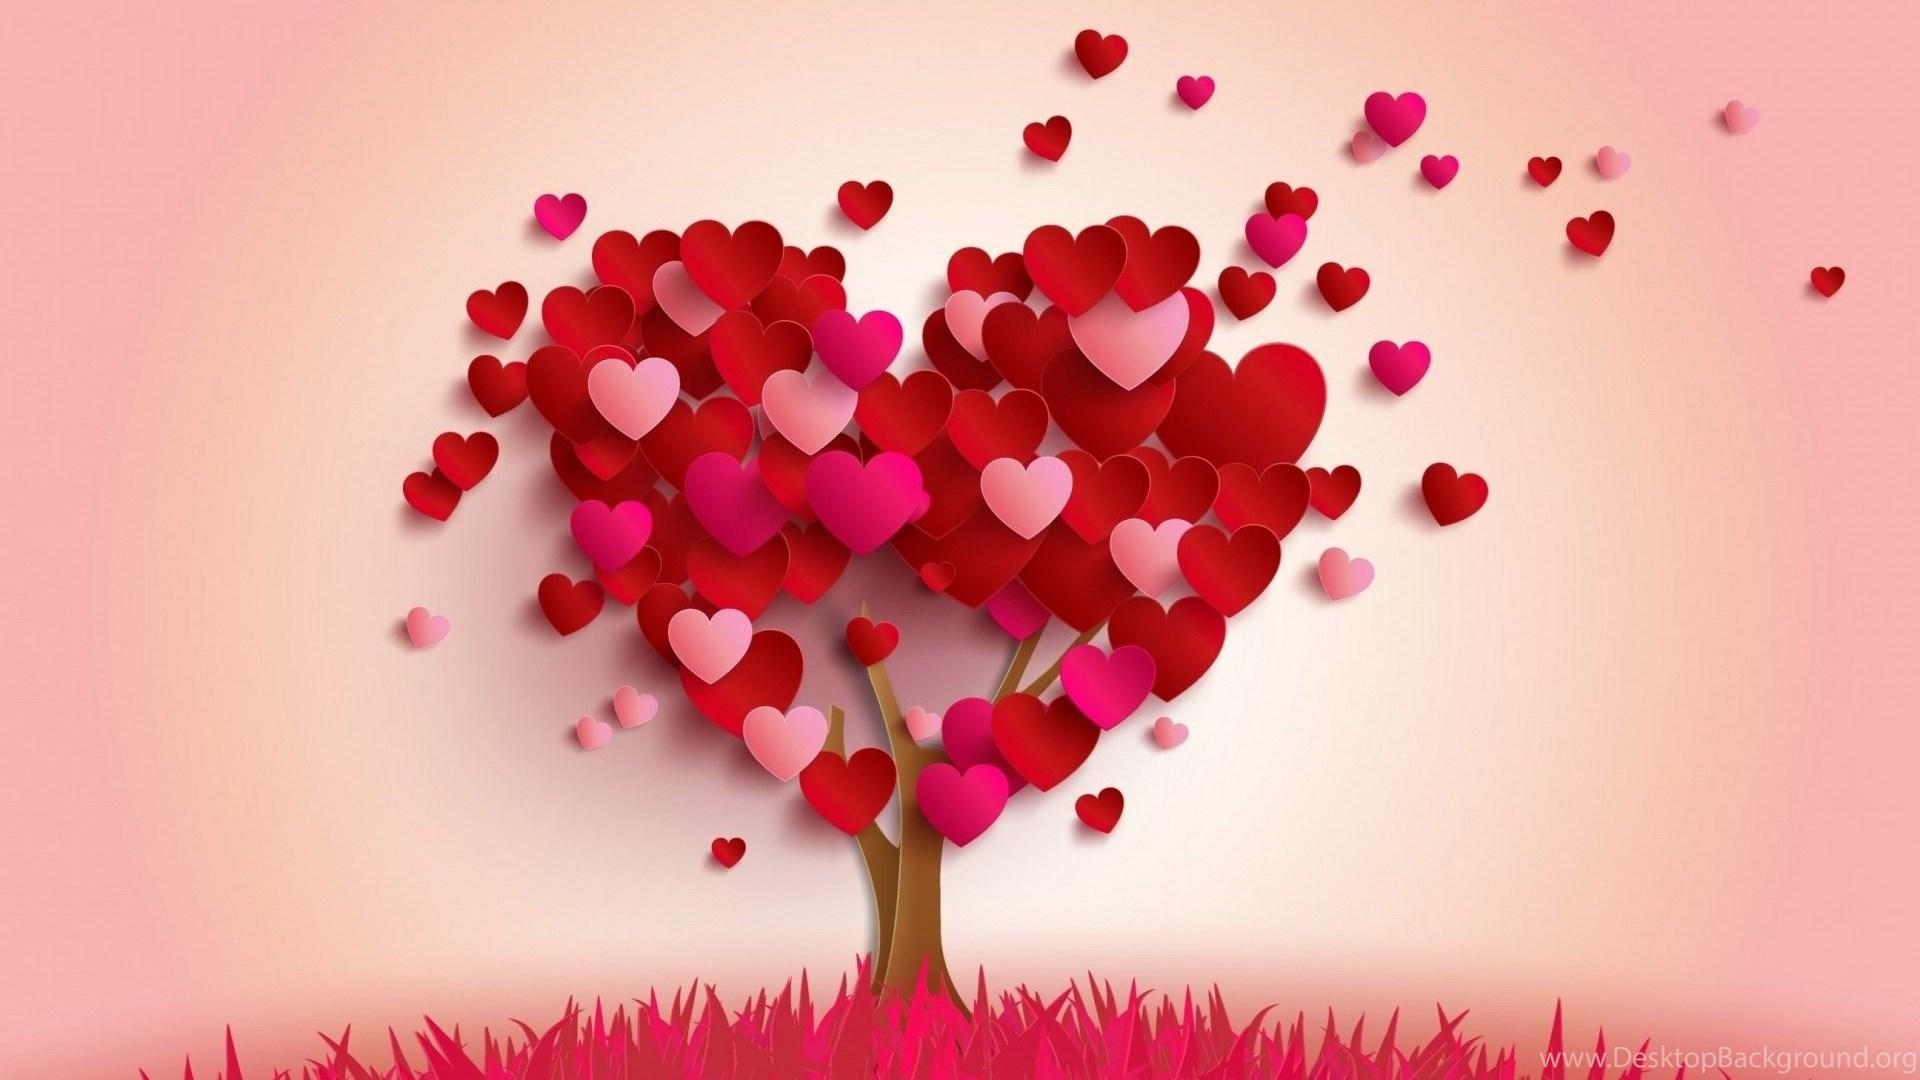 10 Top Cute Love Heart Wallpapers For Mobile Full Hd 1920